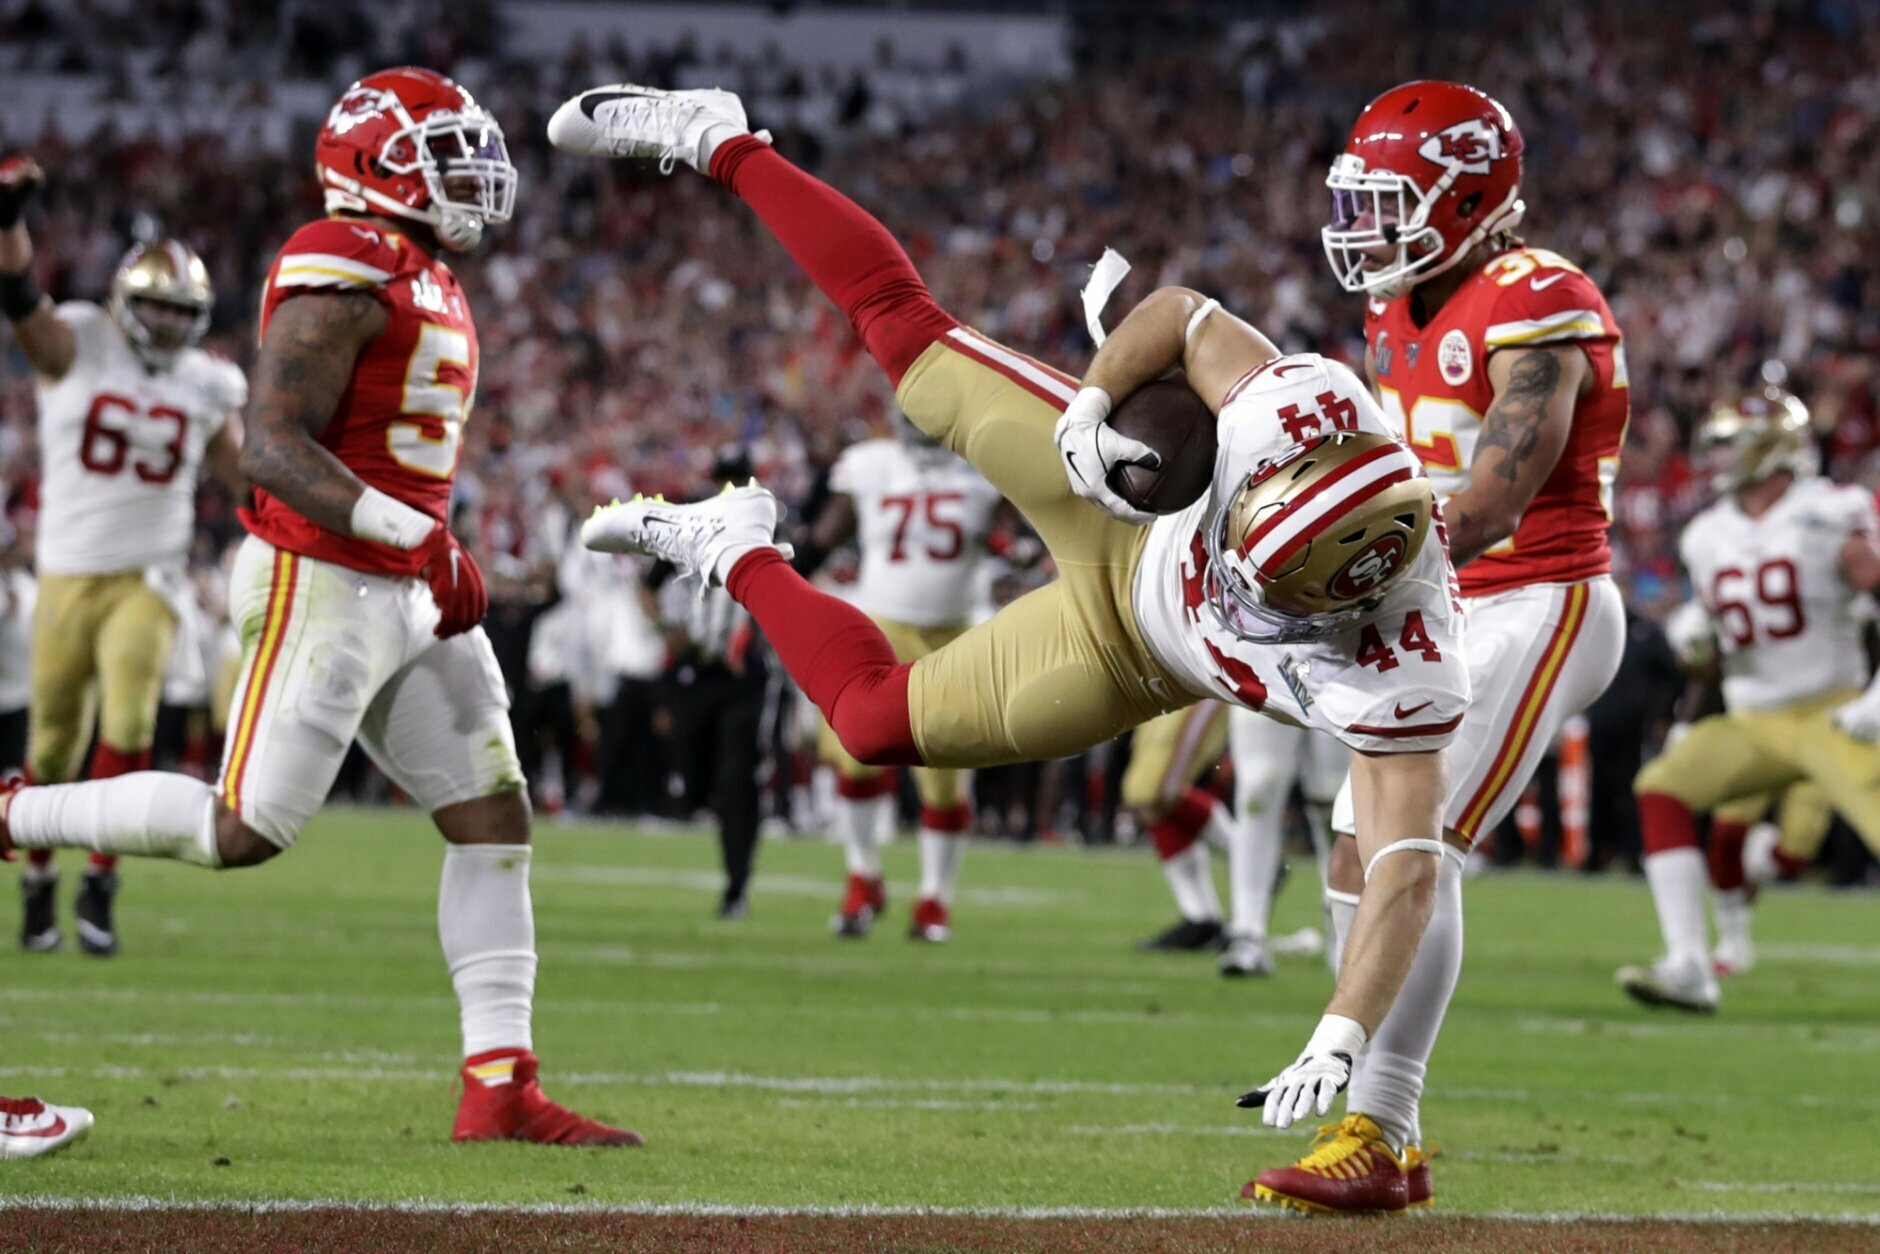 San Francisco 49ers' Kyle Juszczyk (44) falls into the end zone for a touchdown the Kansas City Chiefs during the first half of the NFL Super Bowl 54 football game Sunday, Feb. 2, 2020, in Miami Gardens, Fla. (AP Photo/Lynne Sladky)